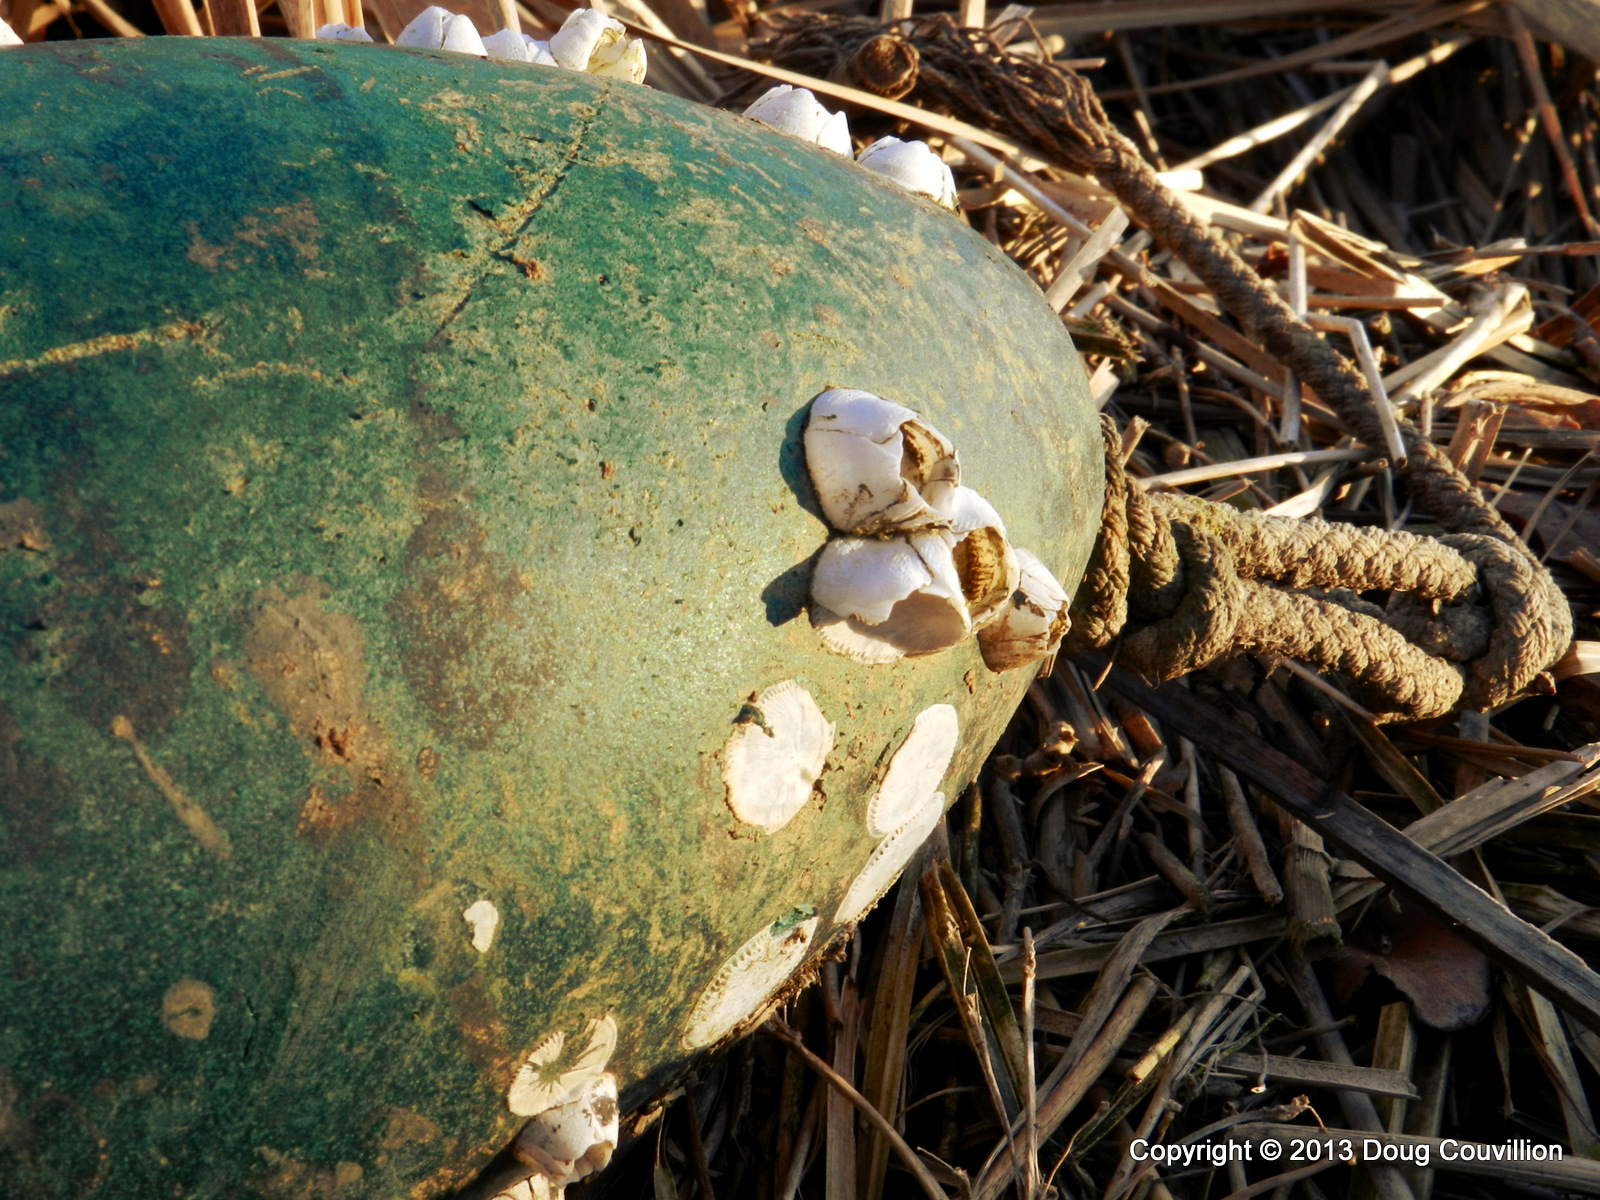 photograph of a buoy washed up on shore